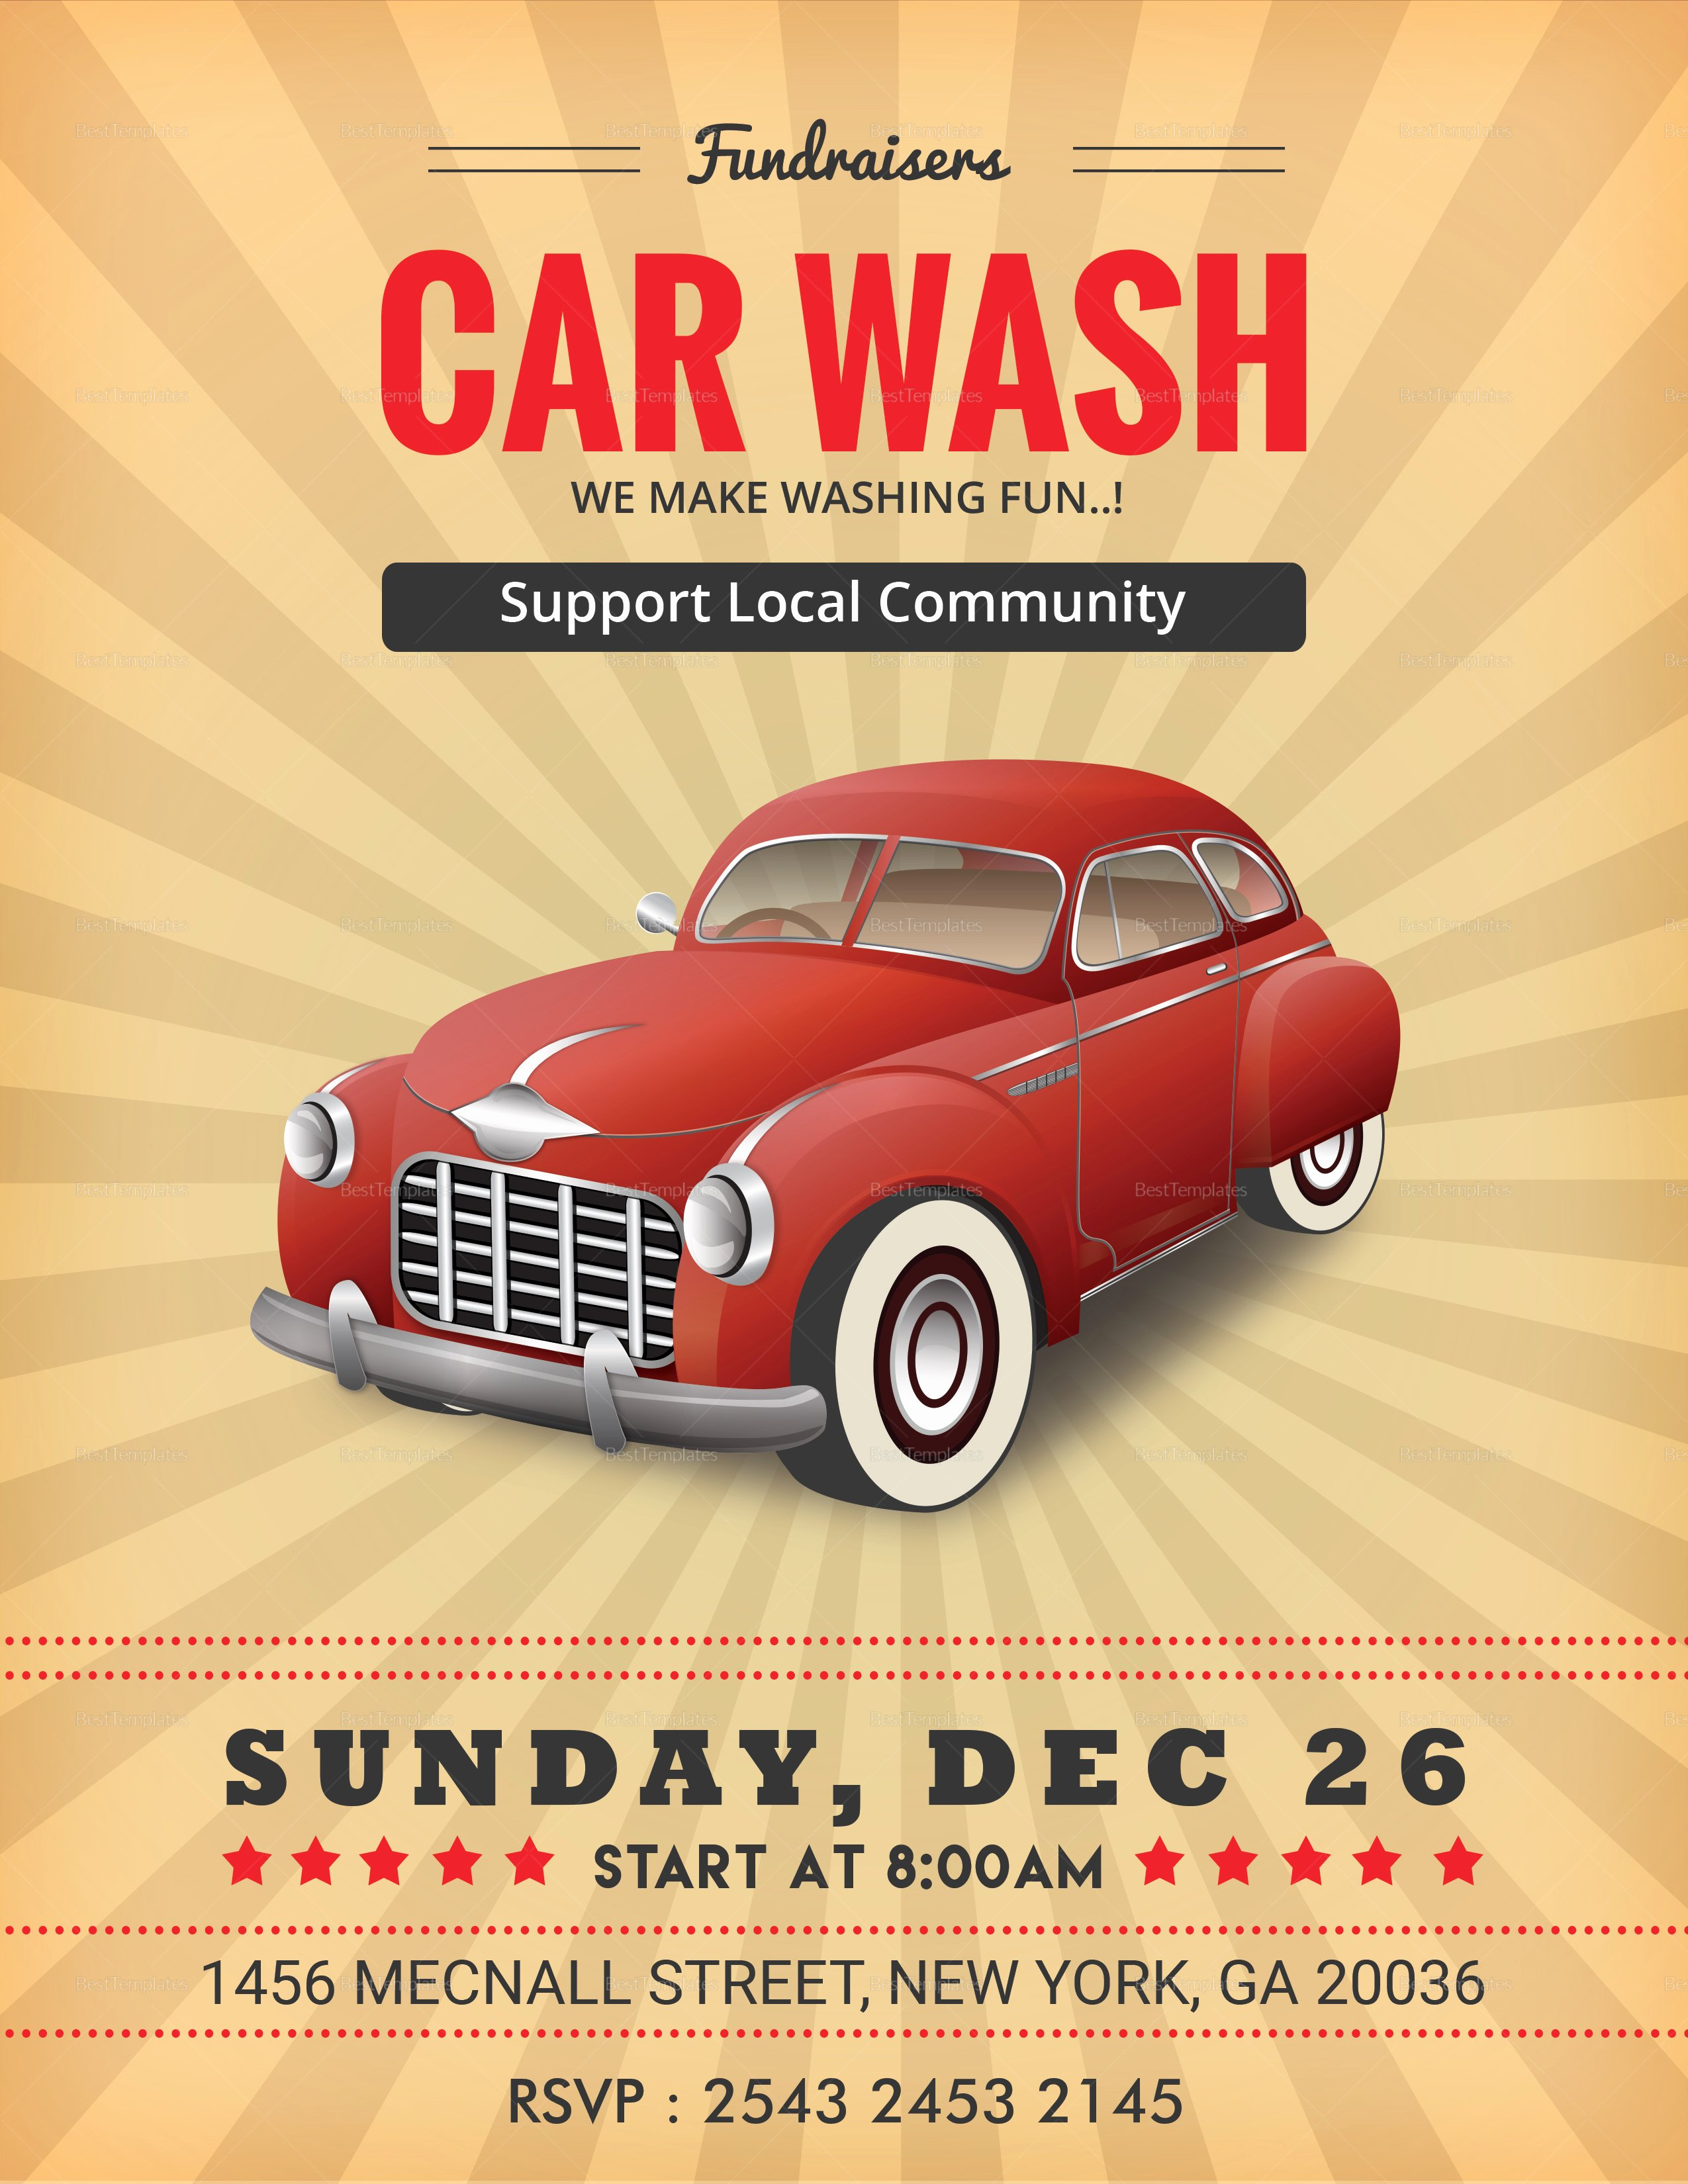 Car Wash Fundraiser Flyer Template Awesome Fundraiser Car Wash Flyer Design Template In Word Psd